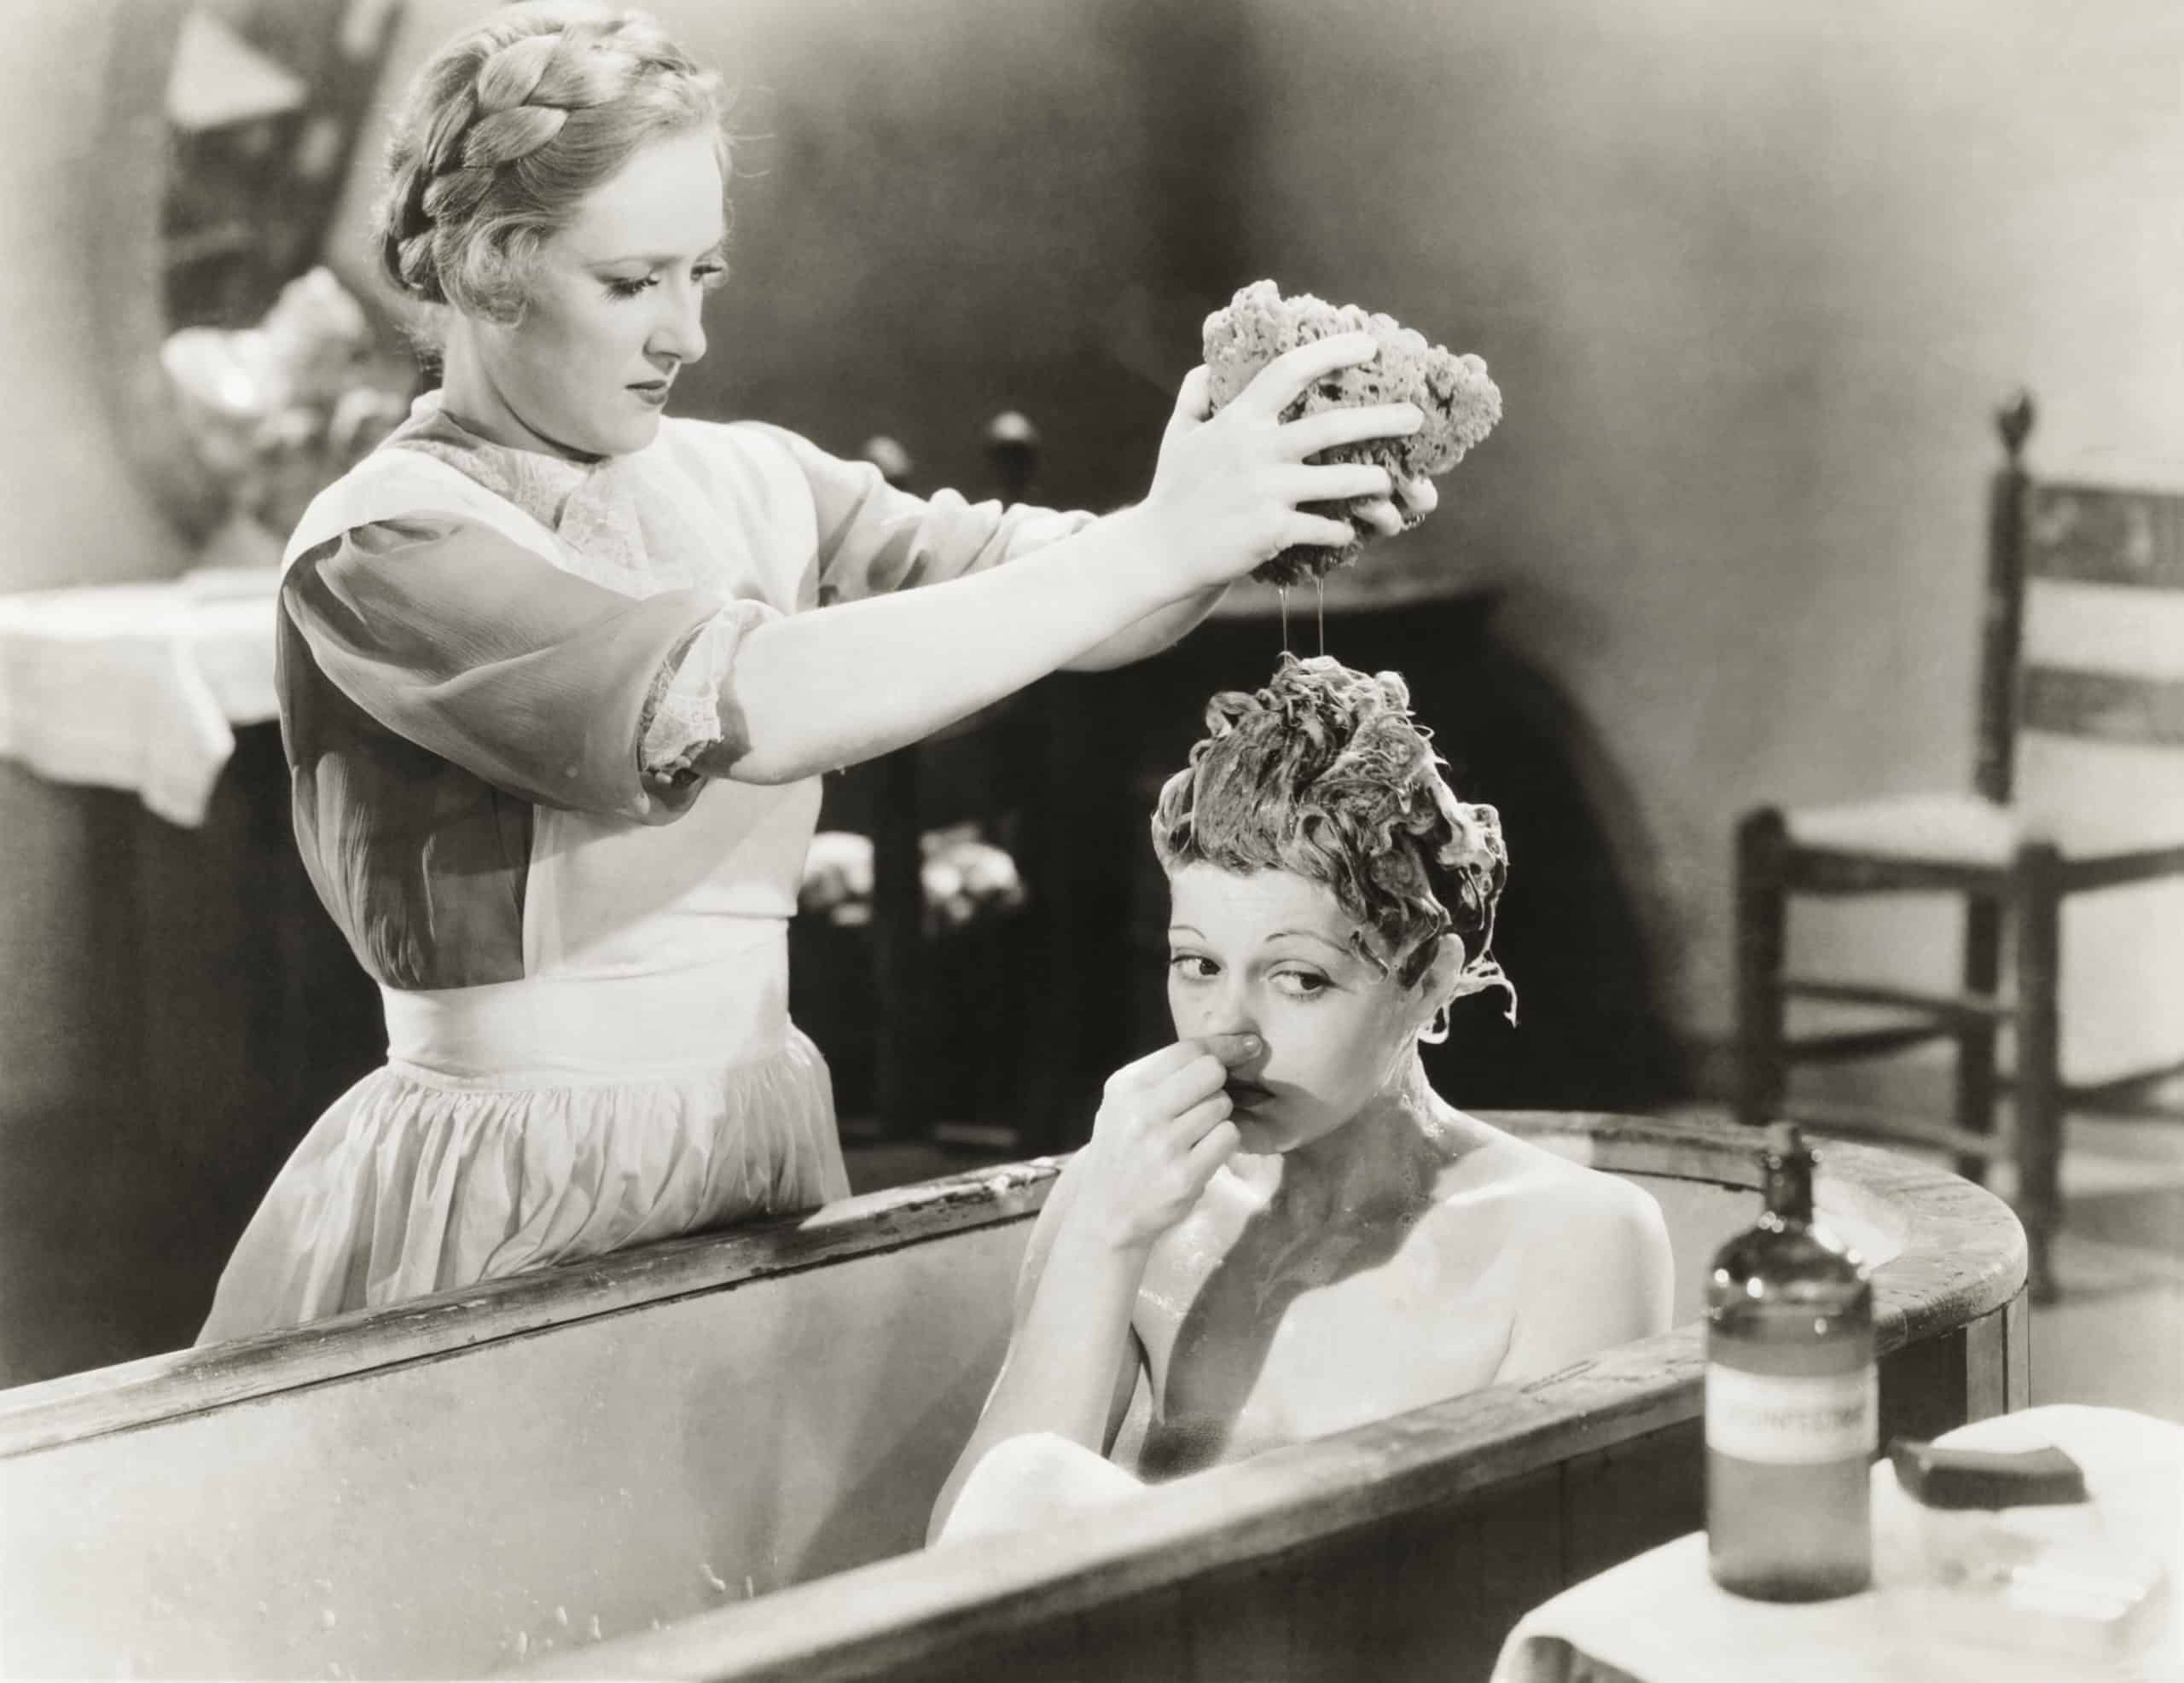 Woman giving other woman bath in tub vintage